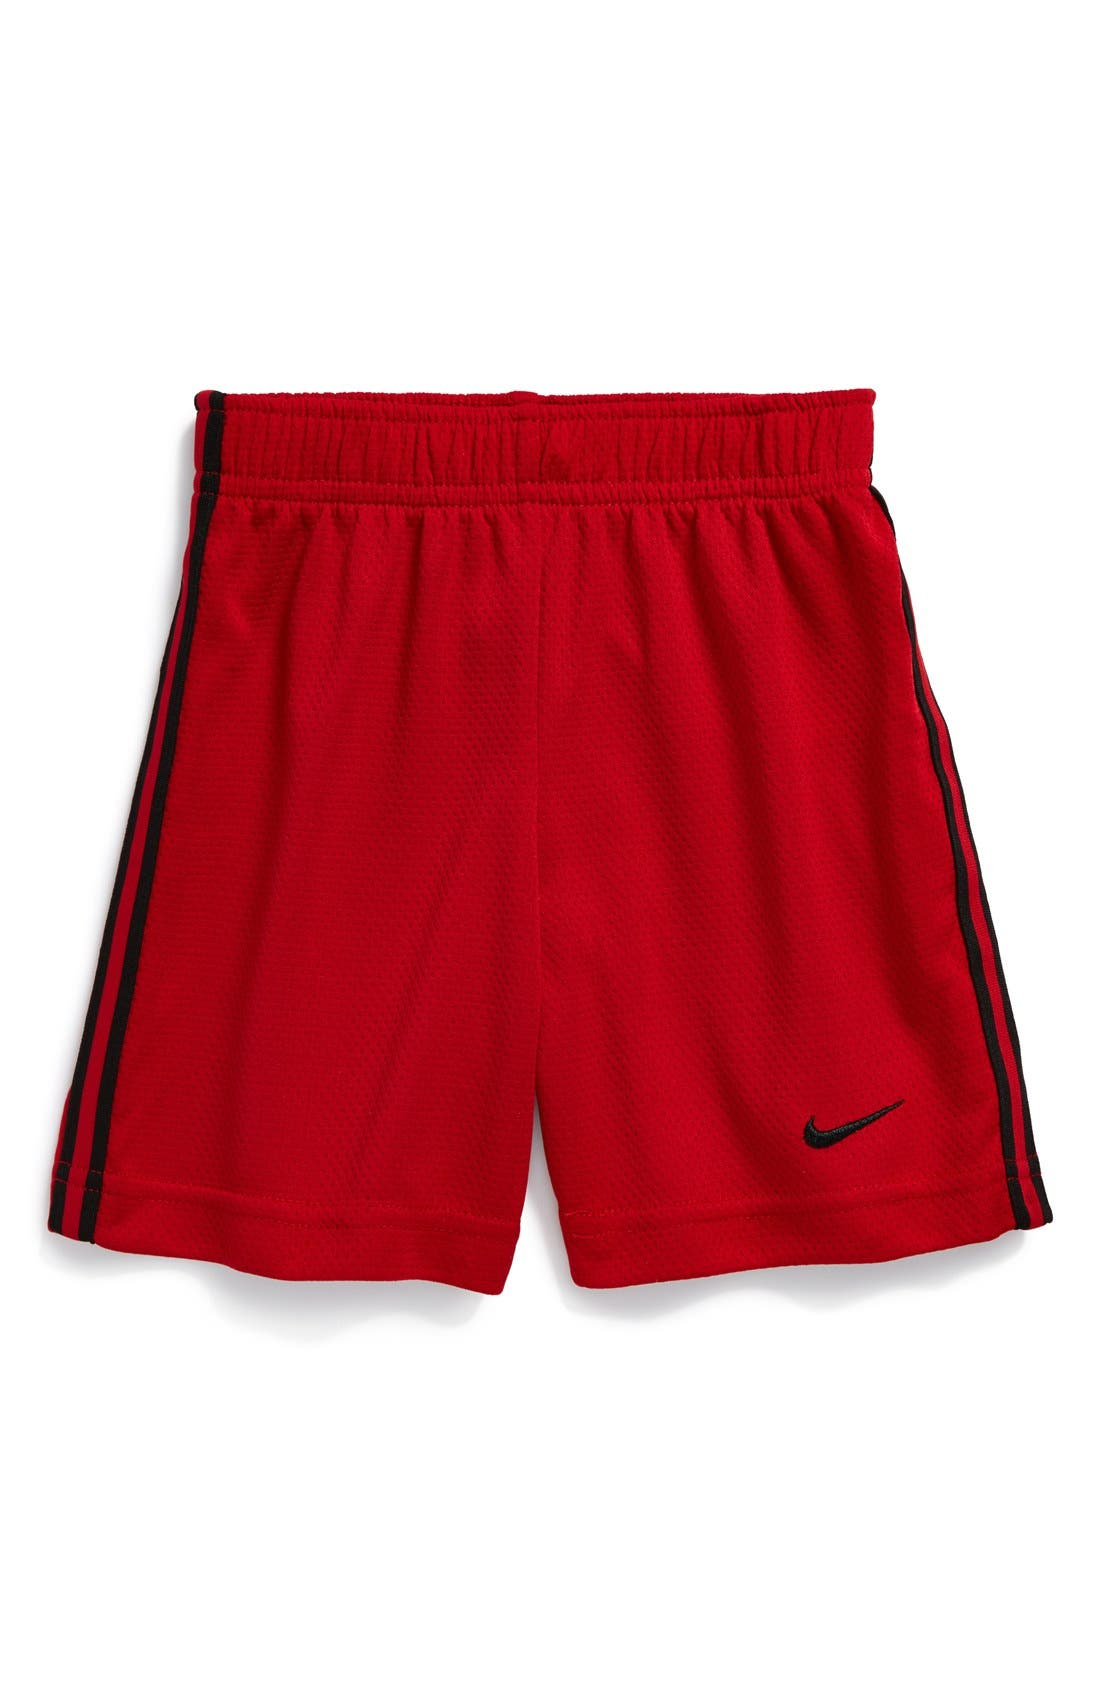 Alternate Image 1 Selected - Nike 'Epic' Shorts (Toddler Boys)